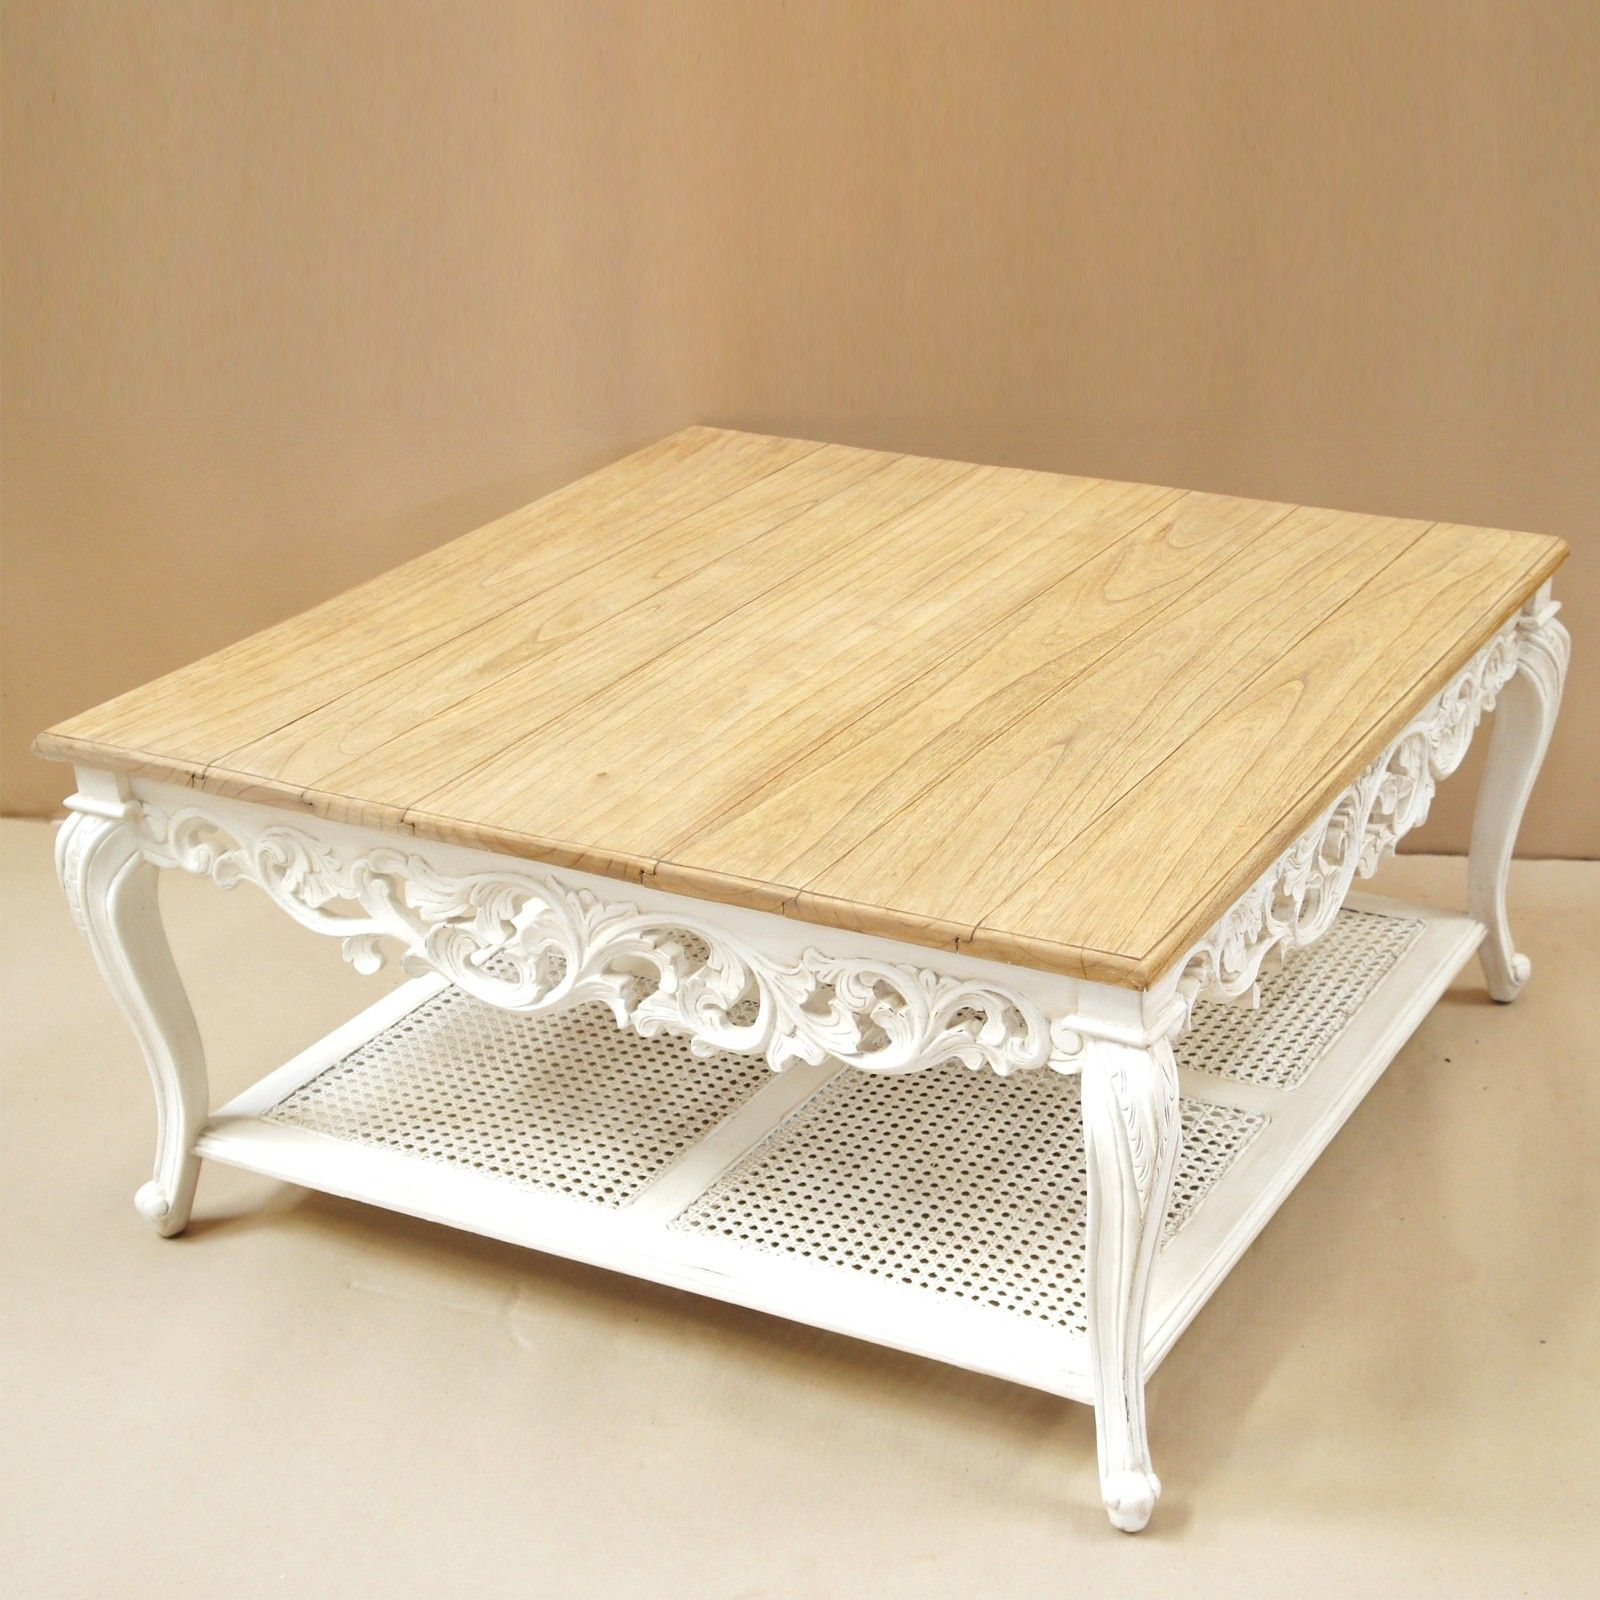 table basse sculpt e de style shabby chic le plateau est en c dre blanc massif belle finition. Black Bedroom Furniture Sets. Home Design Ideas